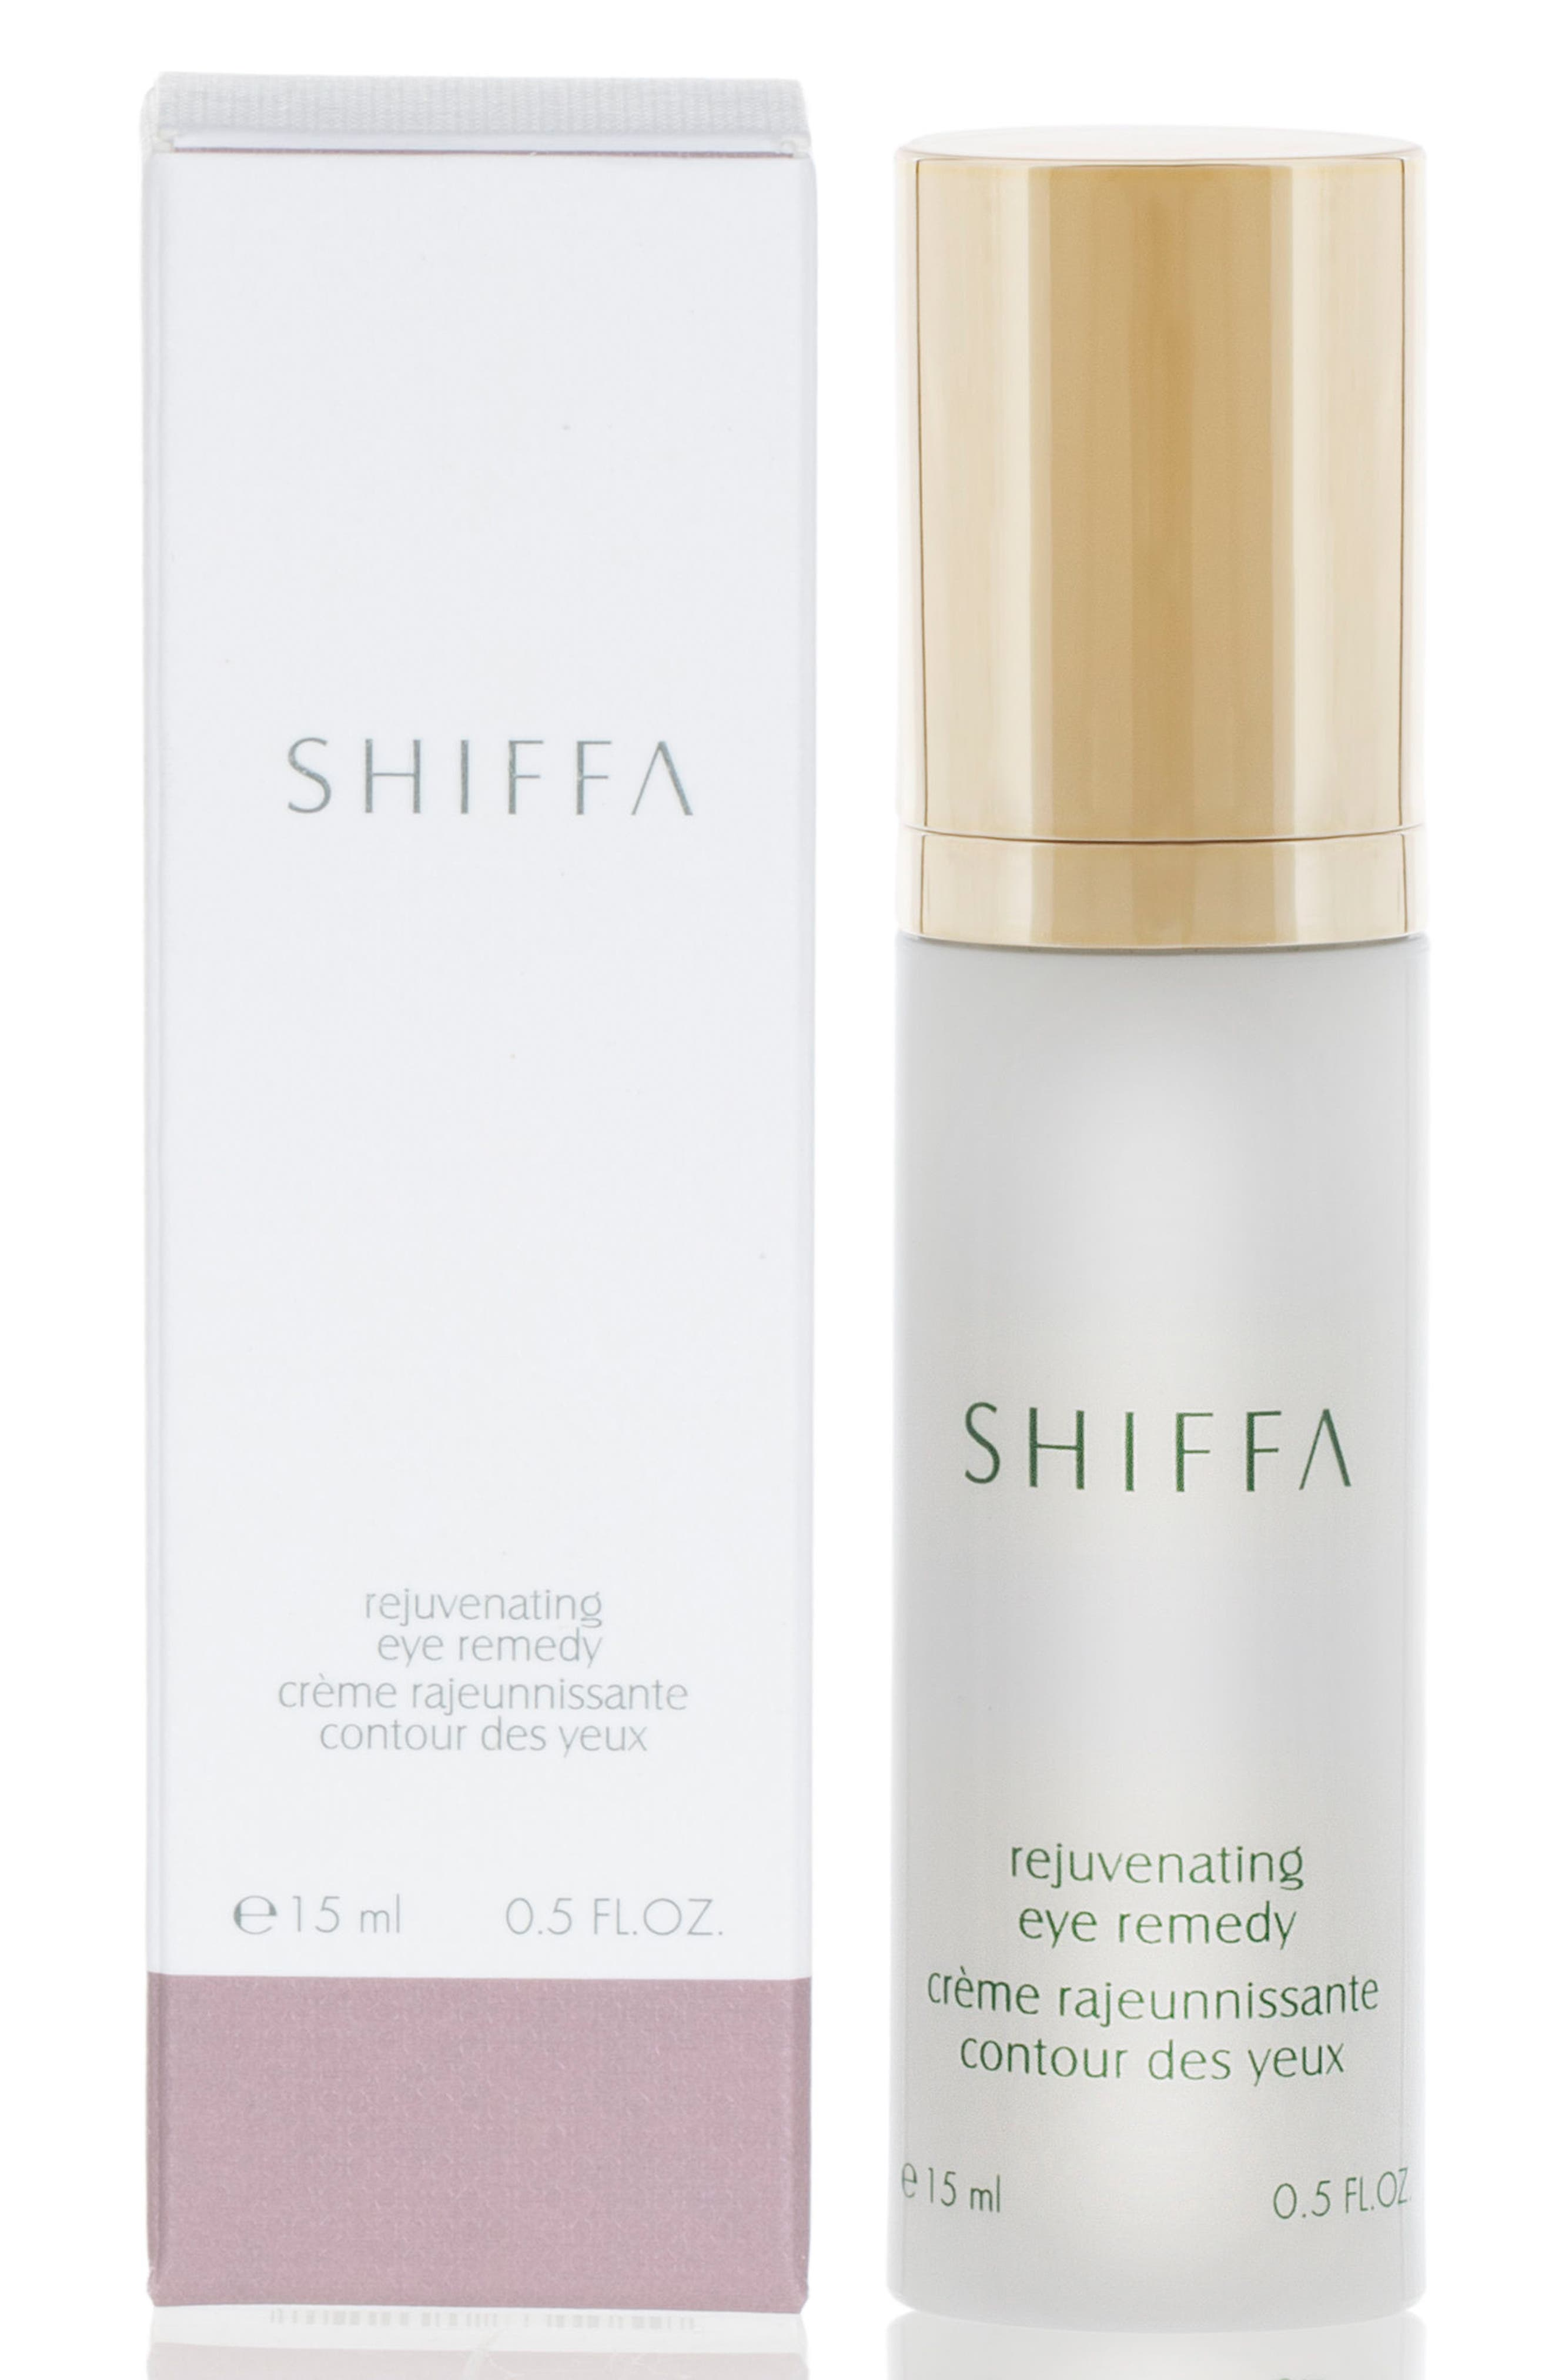 Shiffa Rejuvenating Eye Remedy